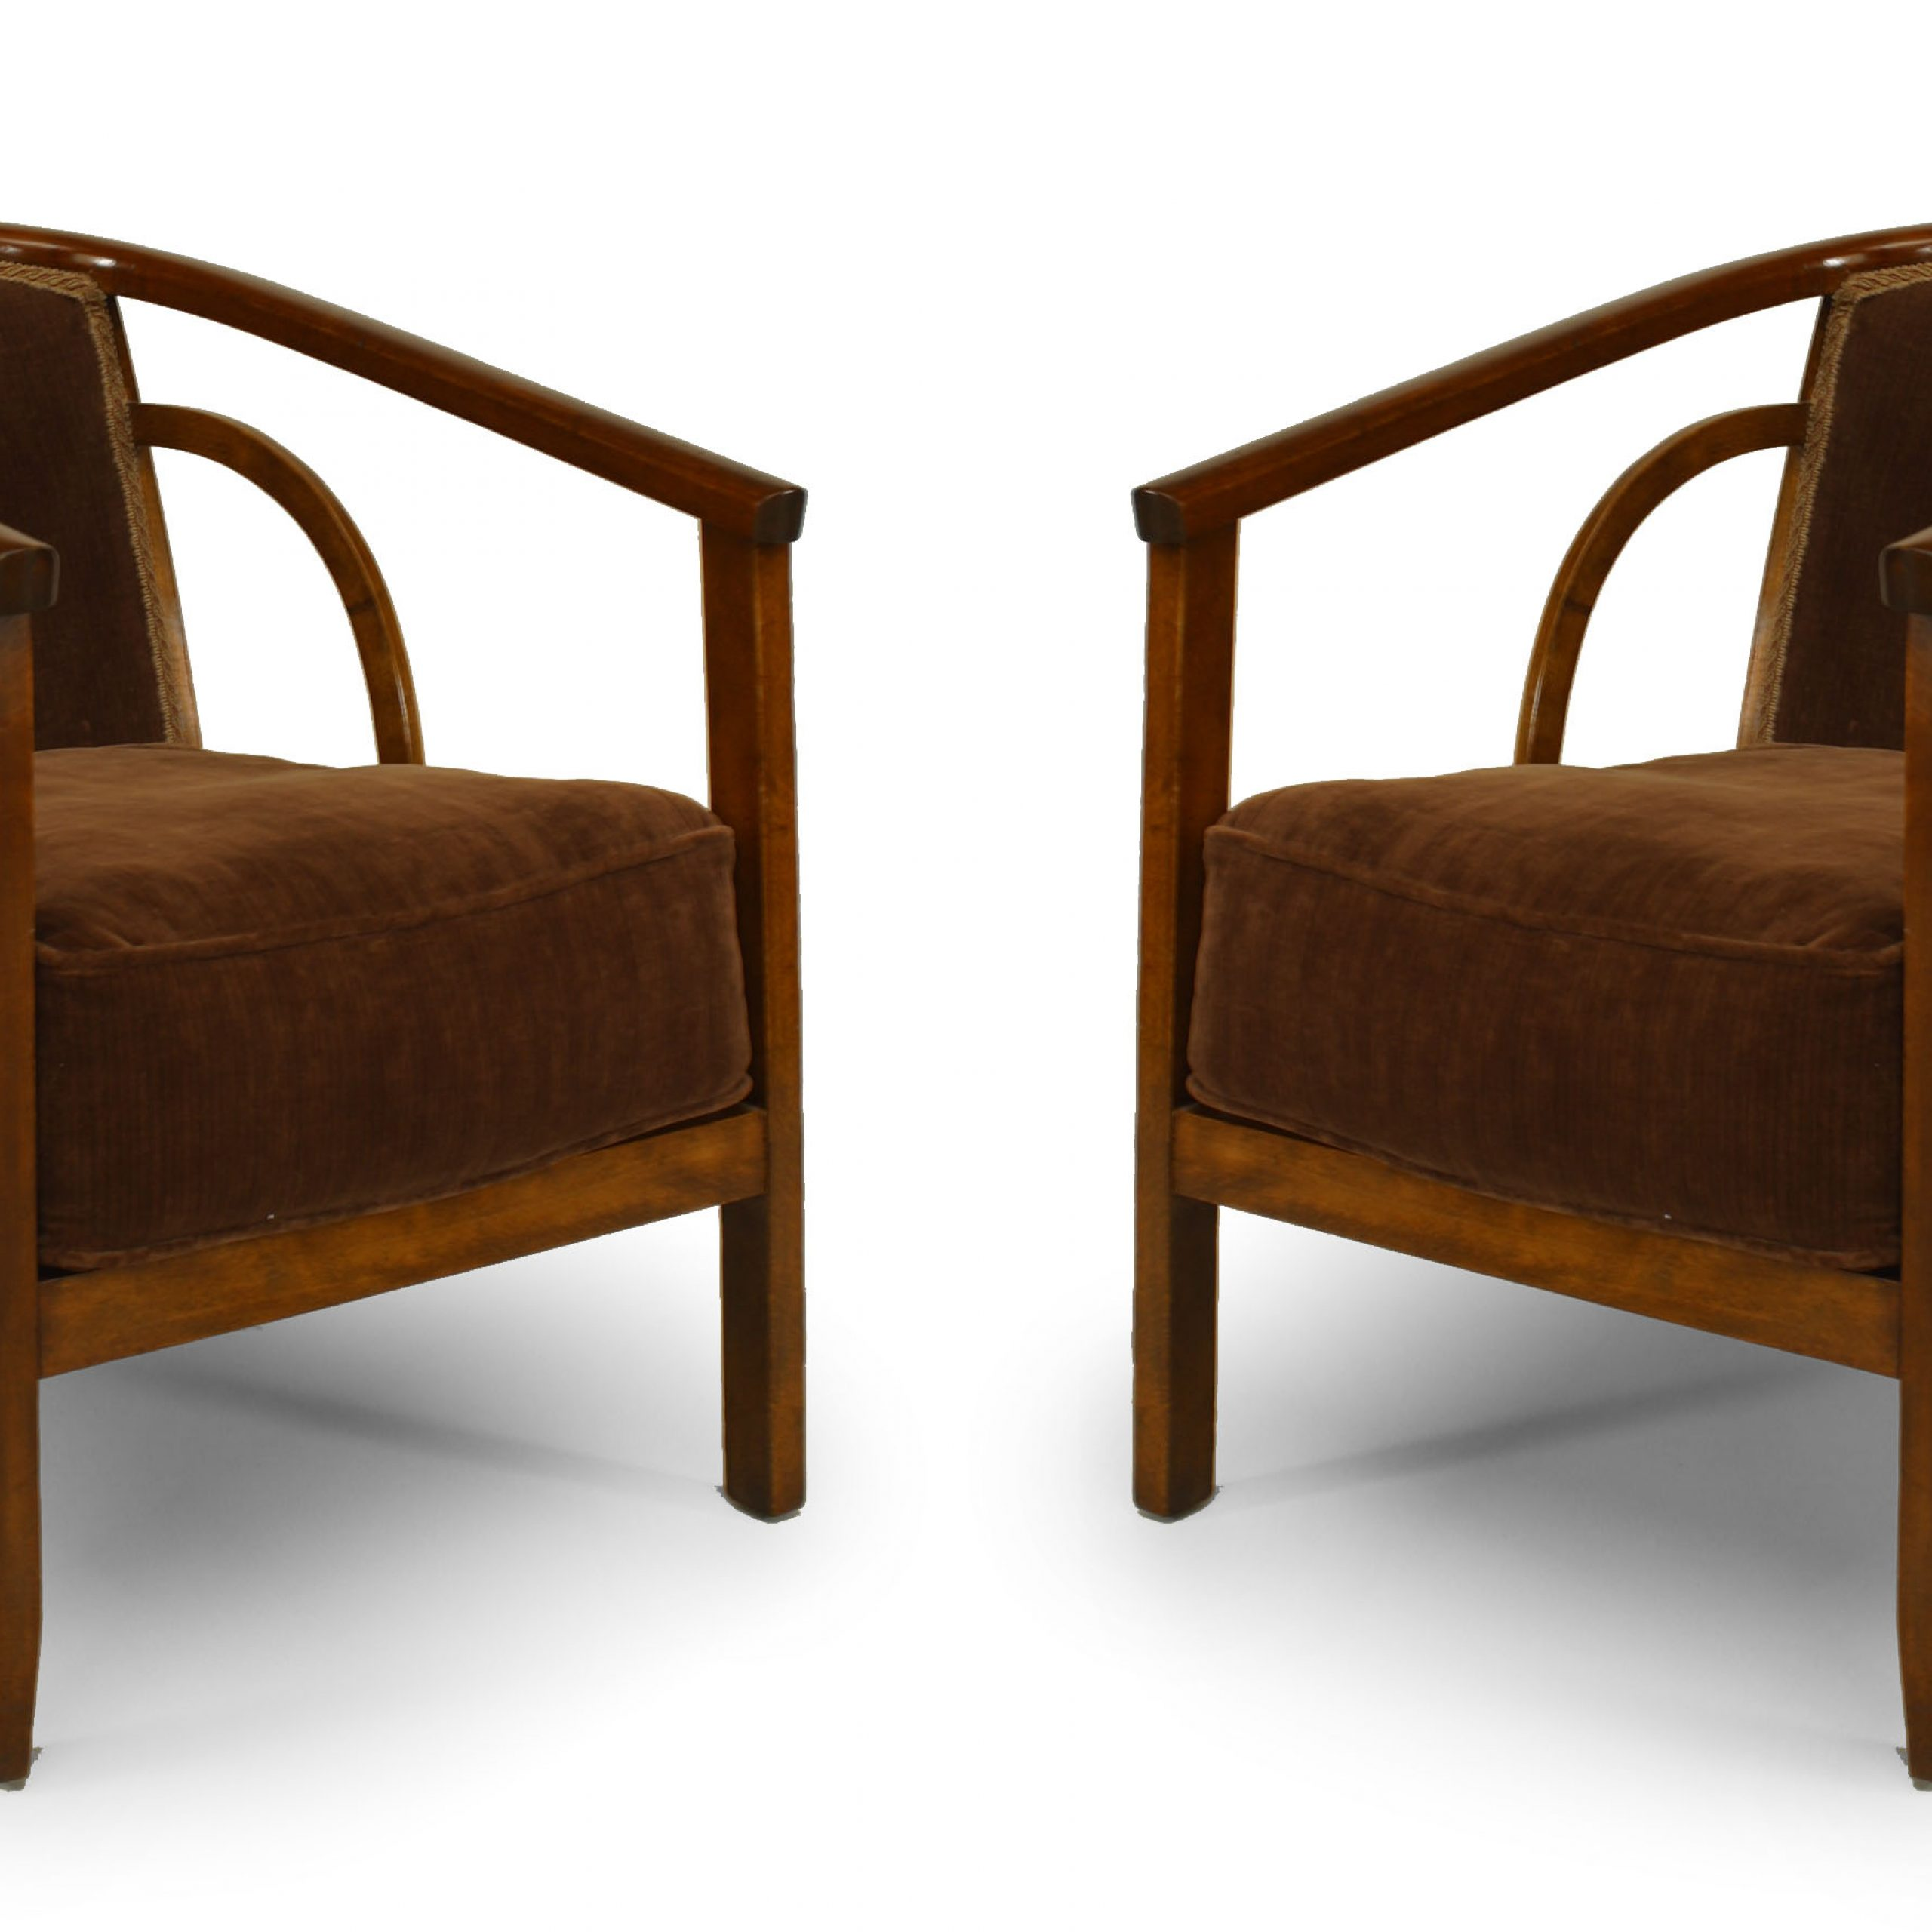 2020 Beachwood Arm Chairs Within Mid Century Beechwood Arm Chairs (View 9 of 20)